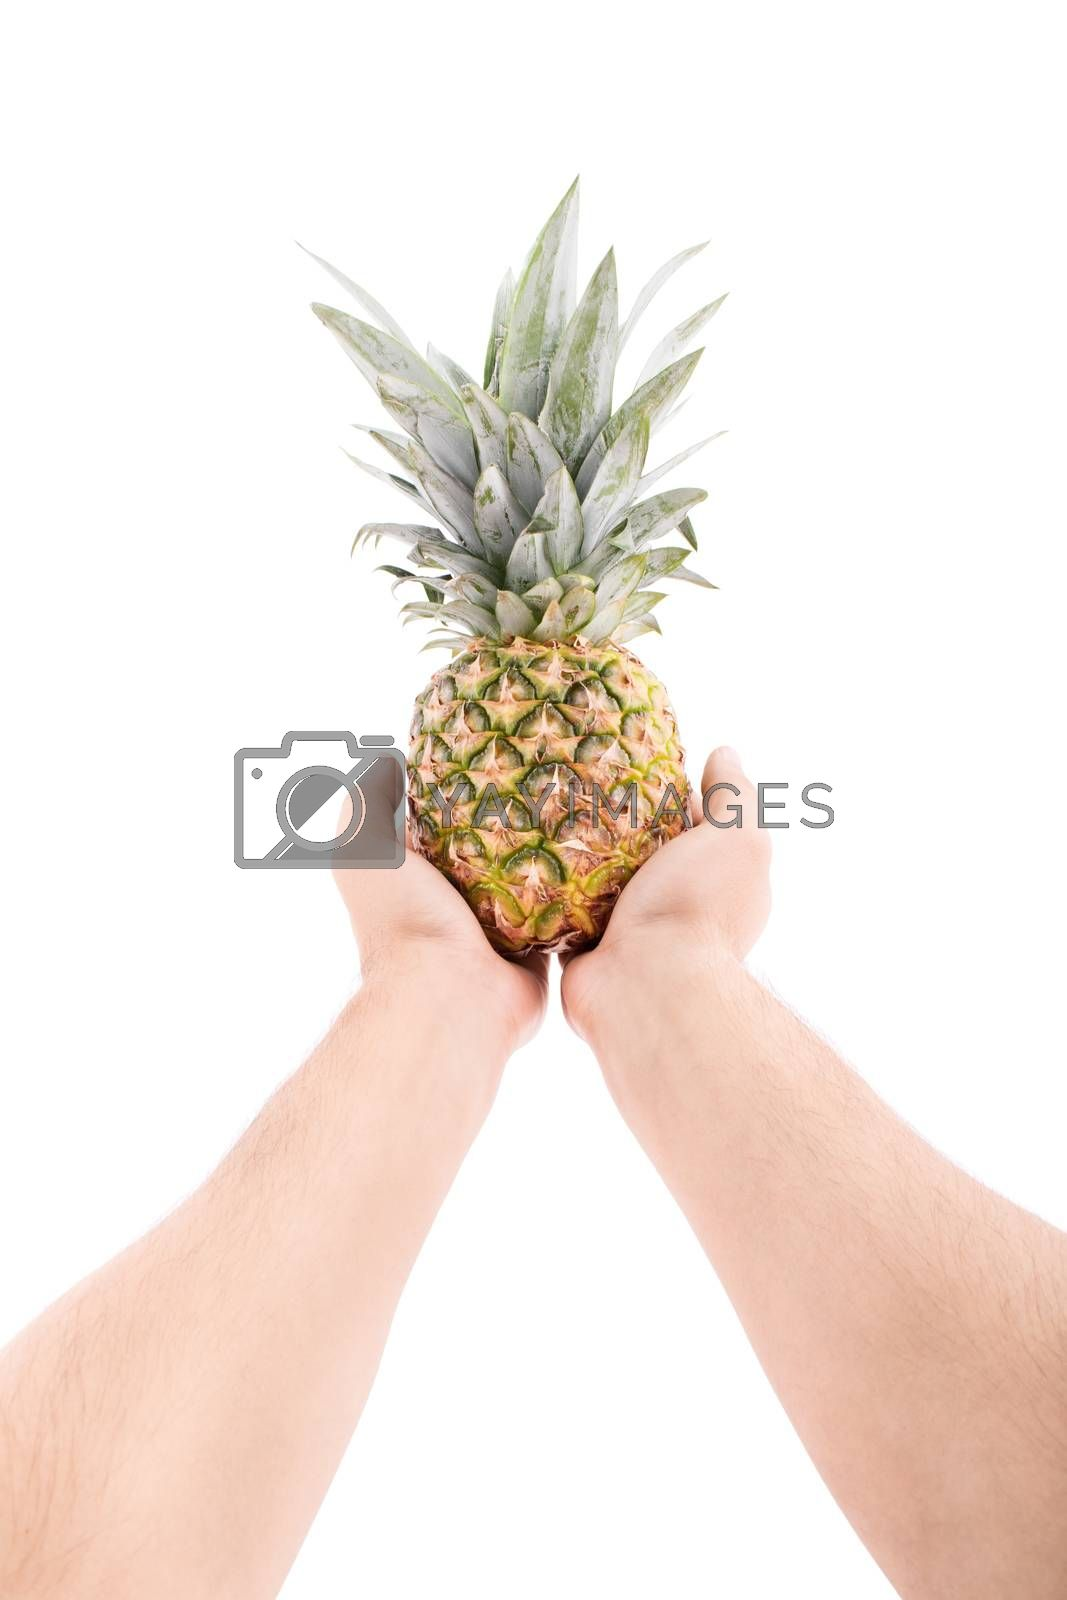 Stretched out male hands offering uncut pineapple, isolated on white background.